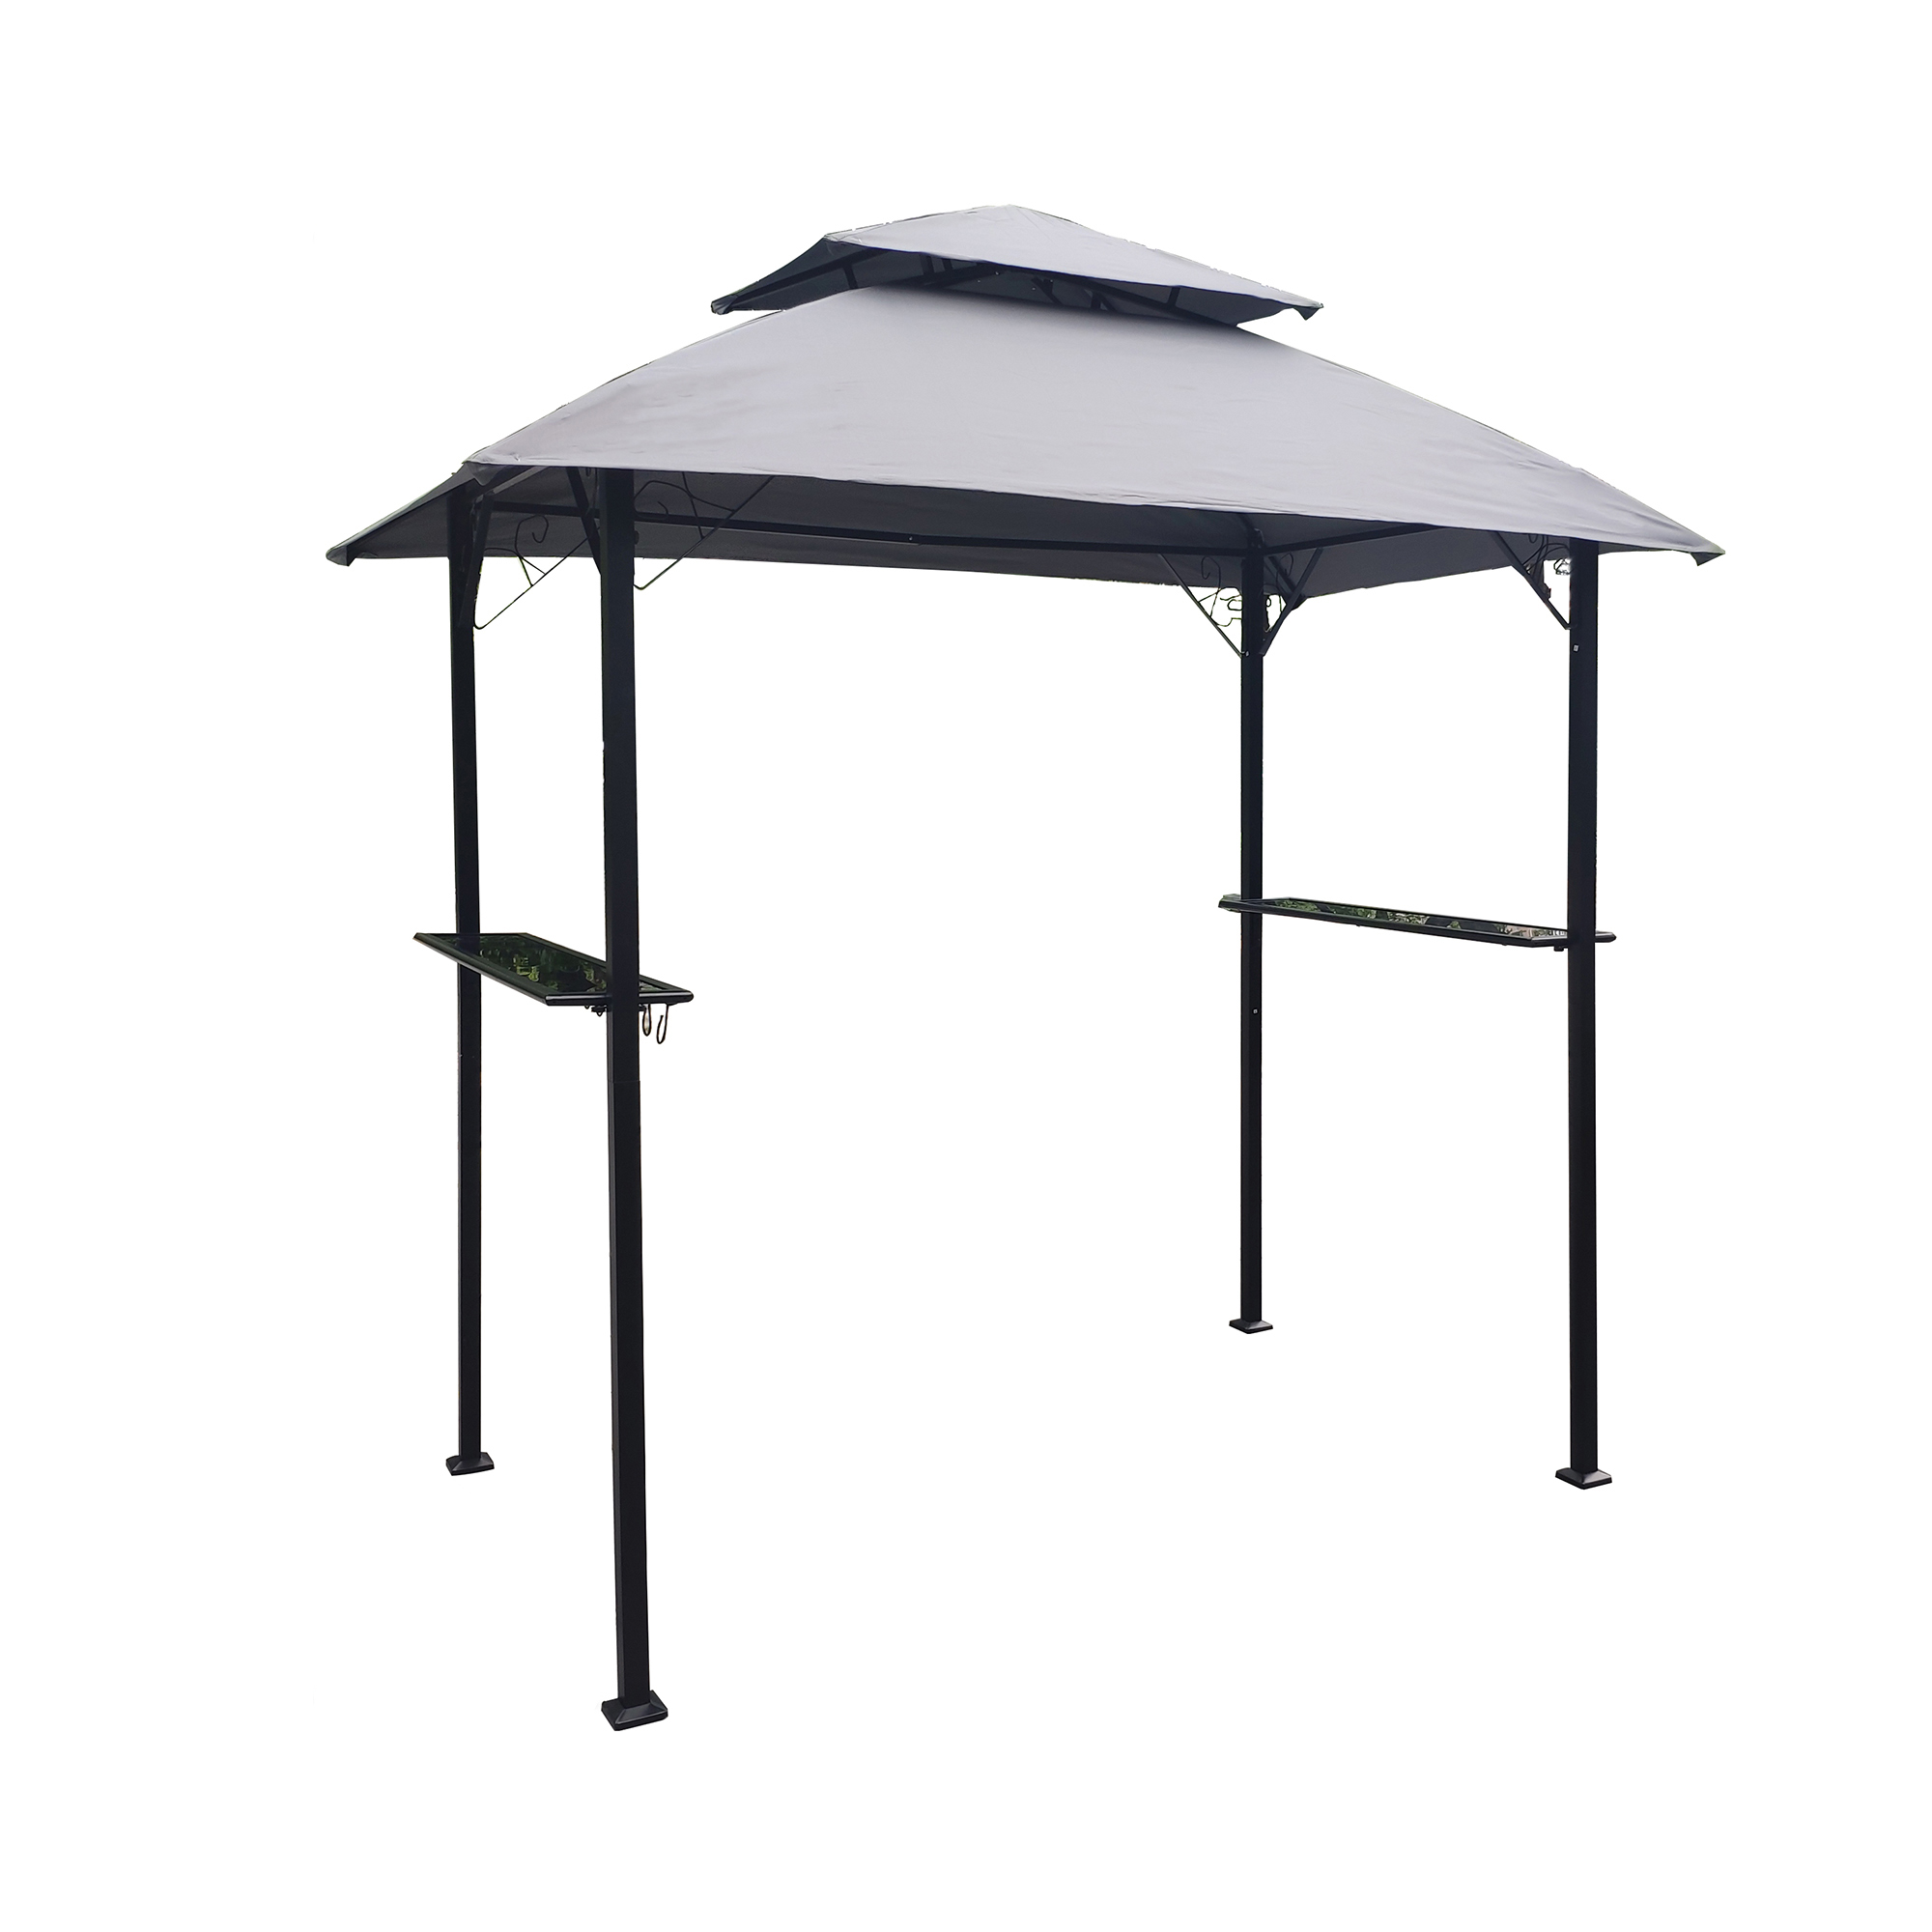 Outdoor Grill Gazebo tent 8 x 5 Ft  Double Tier Soft Top Canopy Frame with hook and Bar Counters - grey